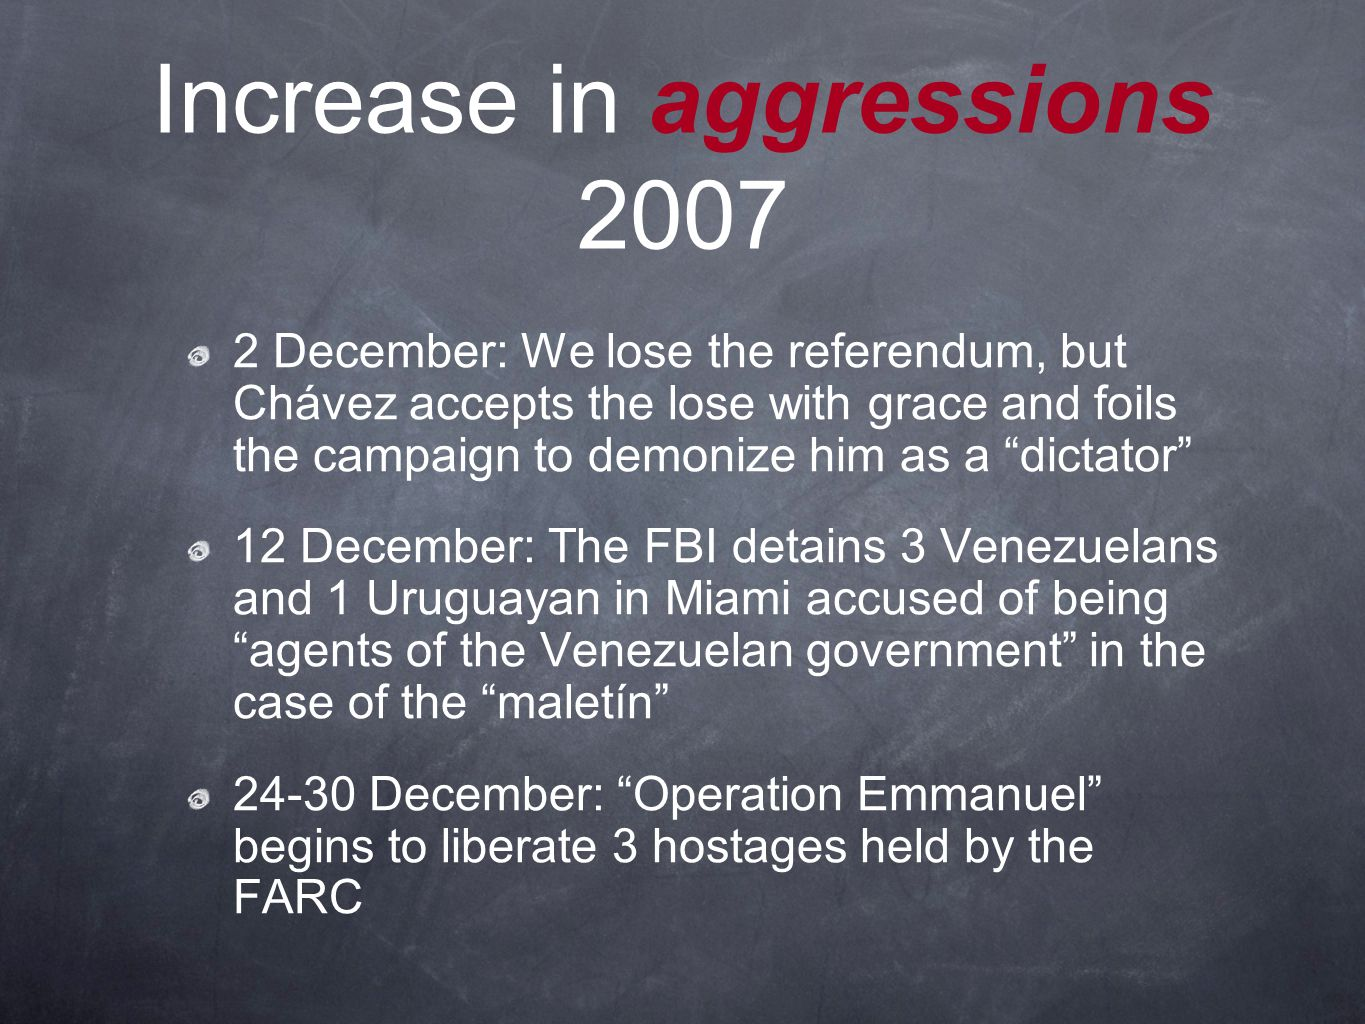 Increase in aggressions 2007 2 December: We lose the referendum, but Chávez accepts the lose with grace and foils the campaign to demonize him as a dictator 12 December: The FBI detains 3 Venezuelans and 1 Uruguayan in Miami accused of being agents of the Venezuelan government in the case of the maletín 24-30 December: Operation Emmanuel begins to liberate 3 hostages held by the FARC